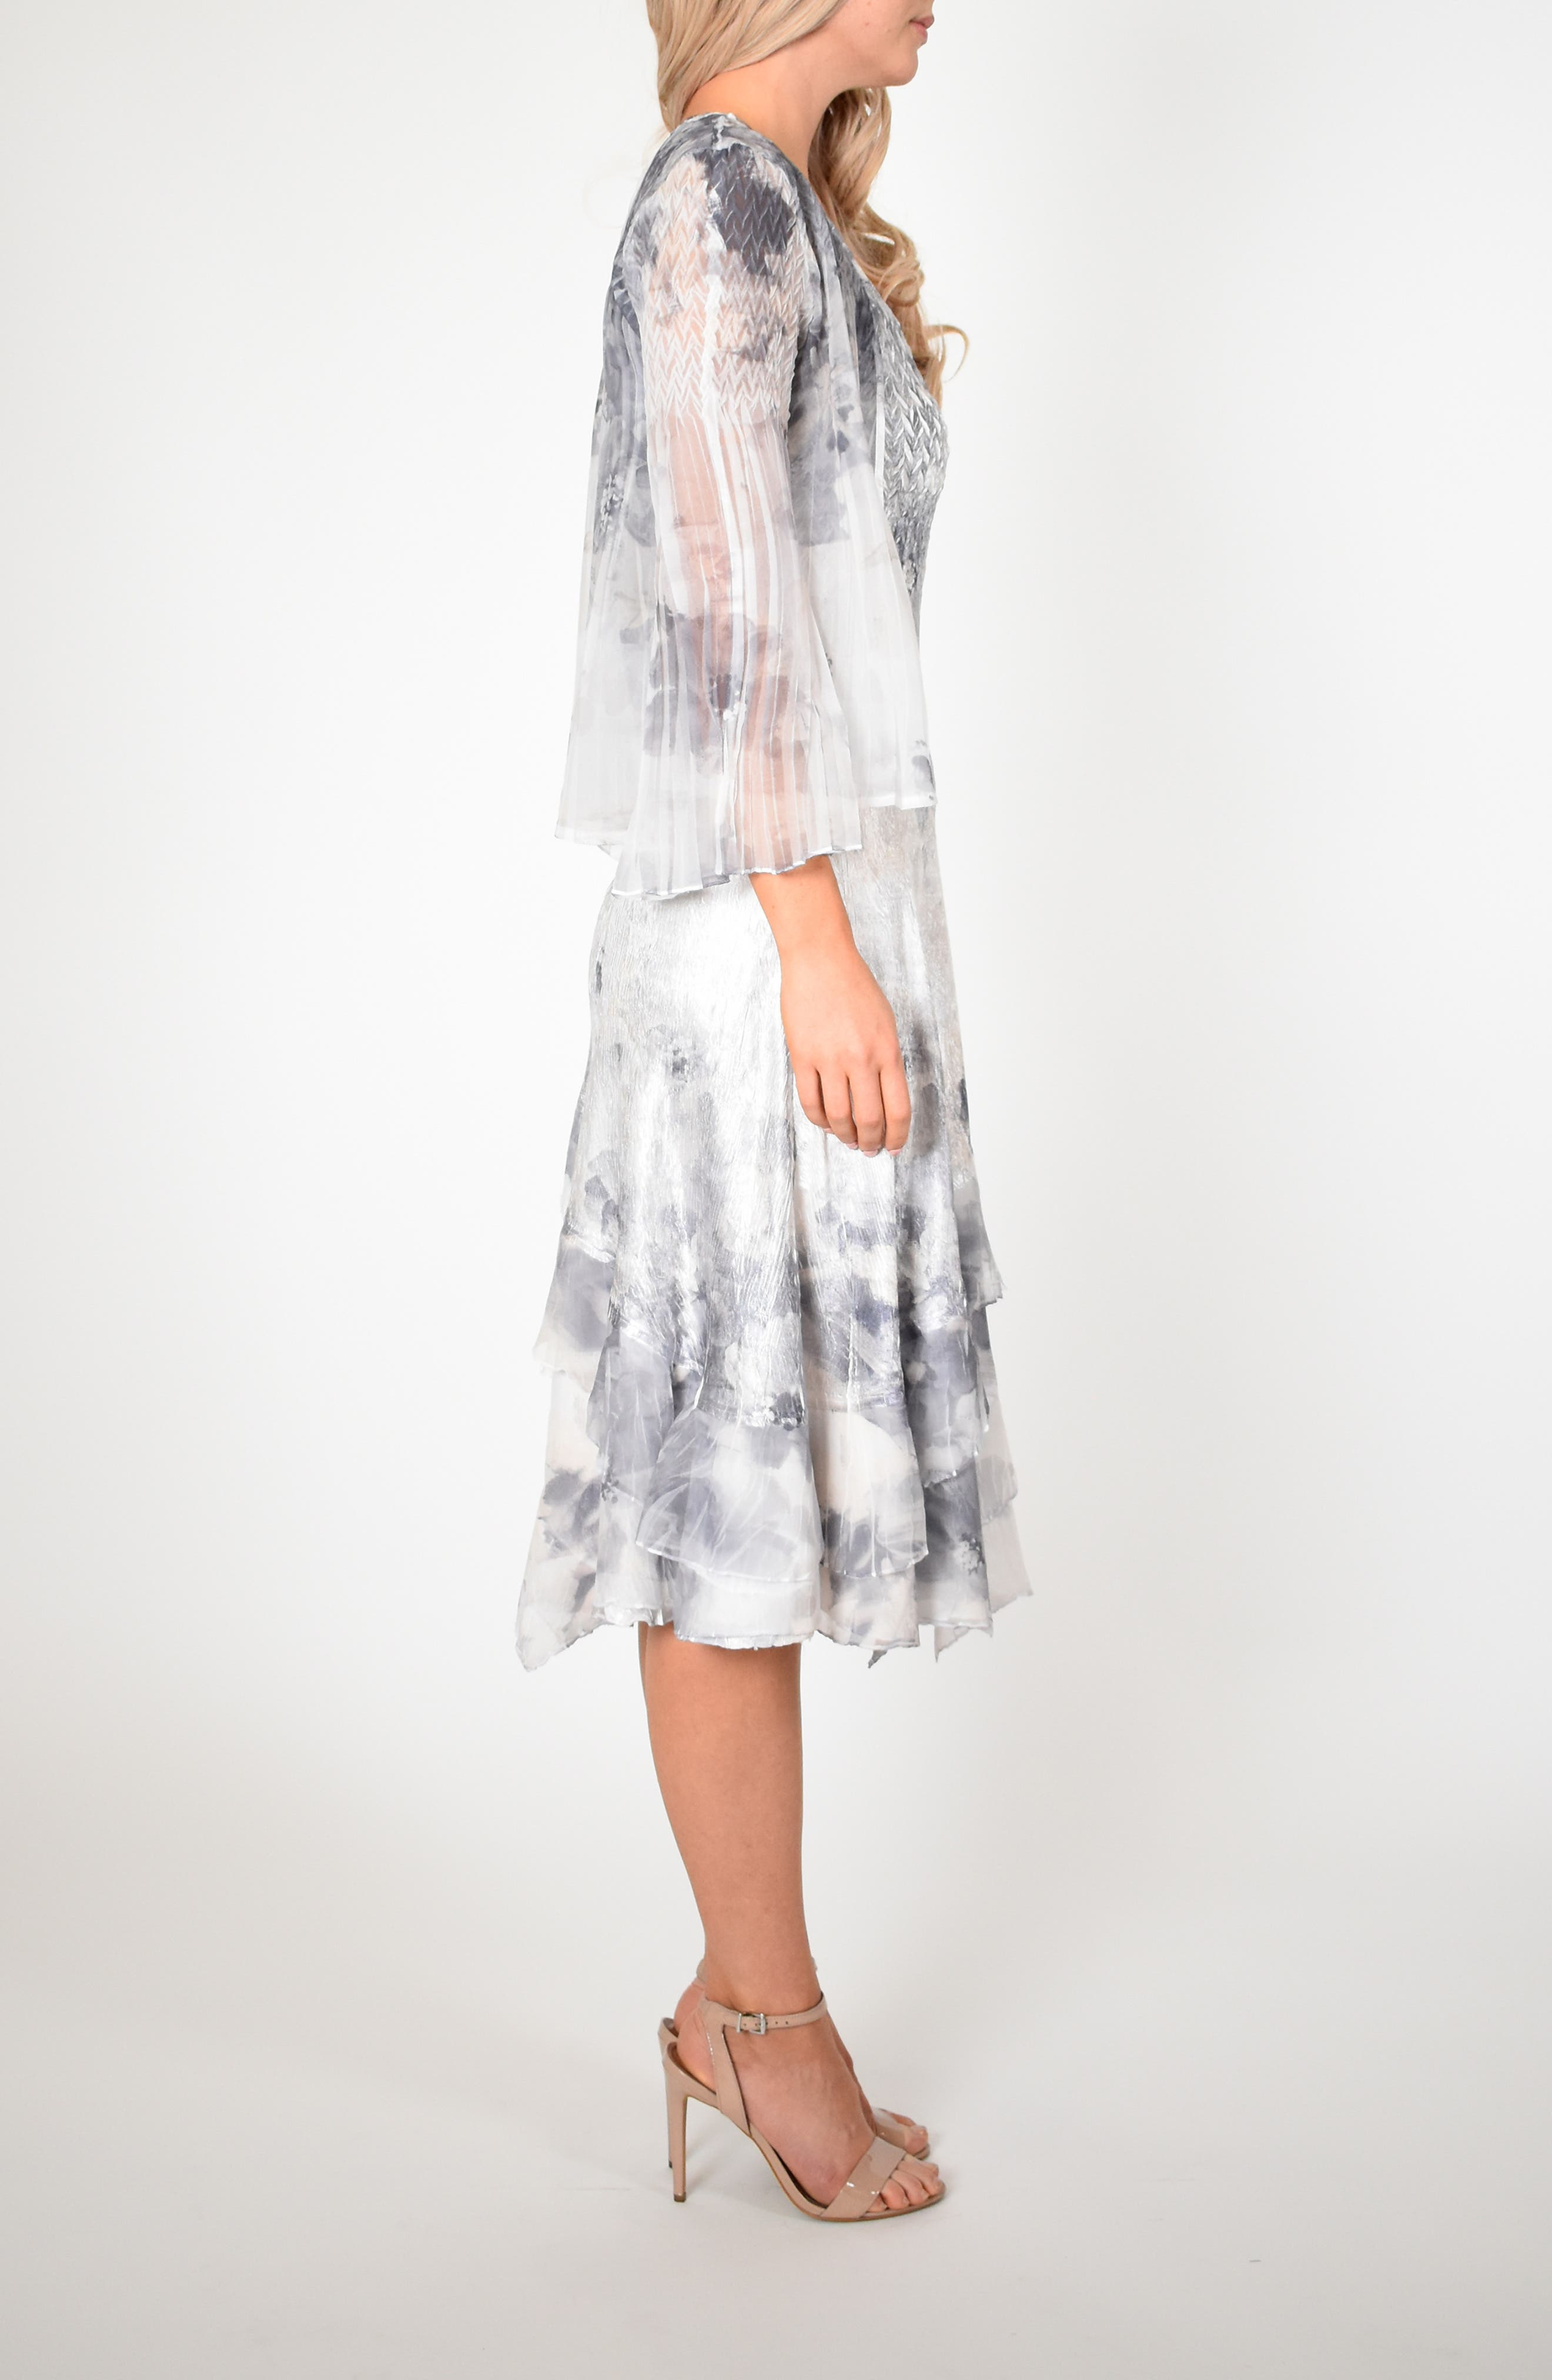 KOMAROV, Floral Charmeuse & Chiffon Dress with Jacket, Alternate thumbnail 8, color, FROSTED PETAL